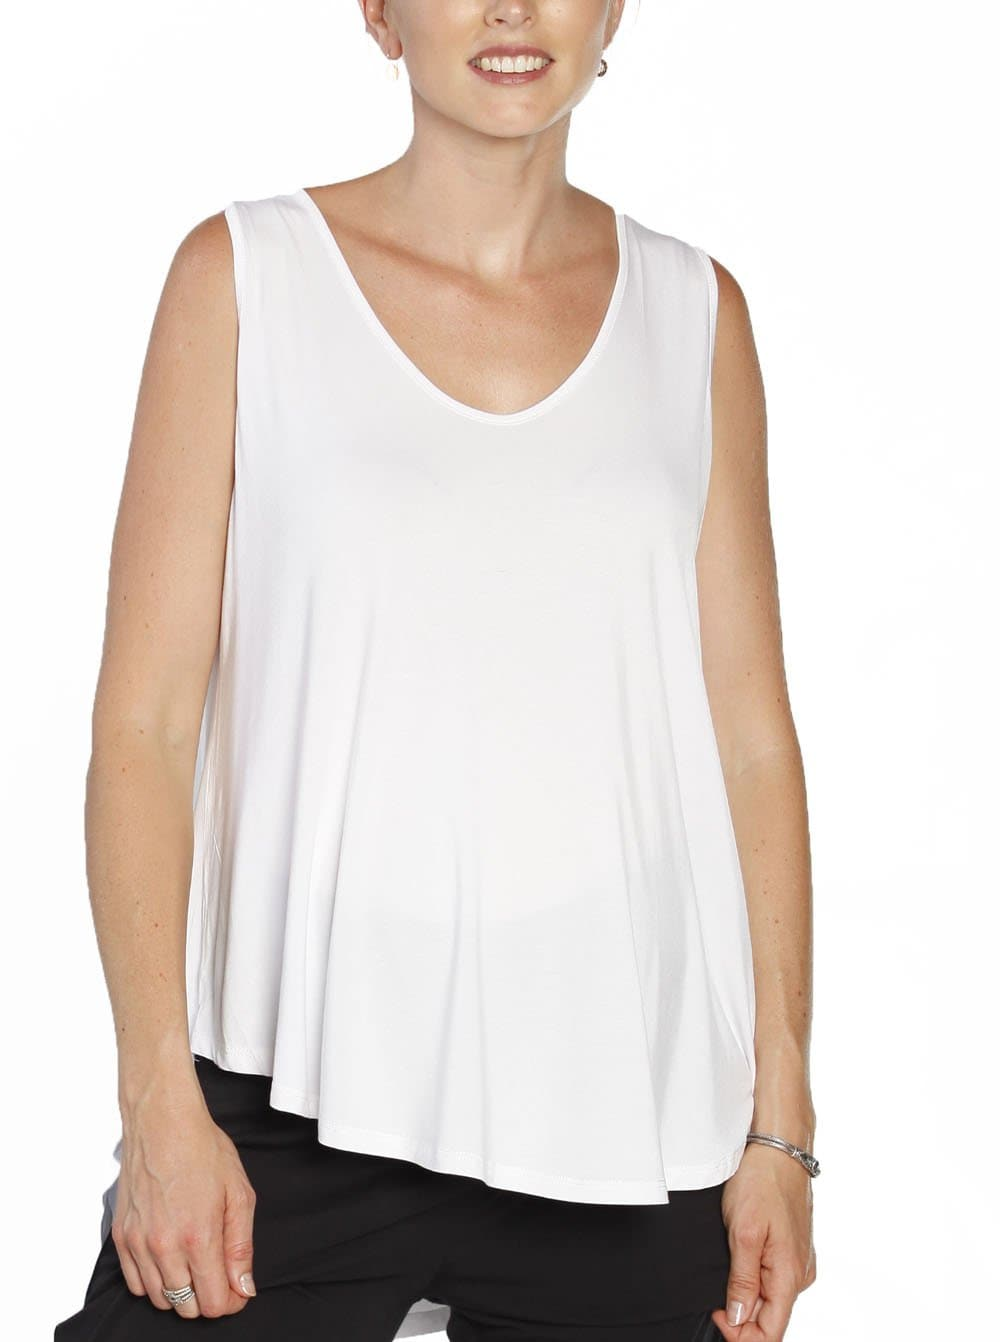 Maternity Sleeveless Swing Top - White